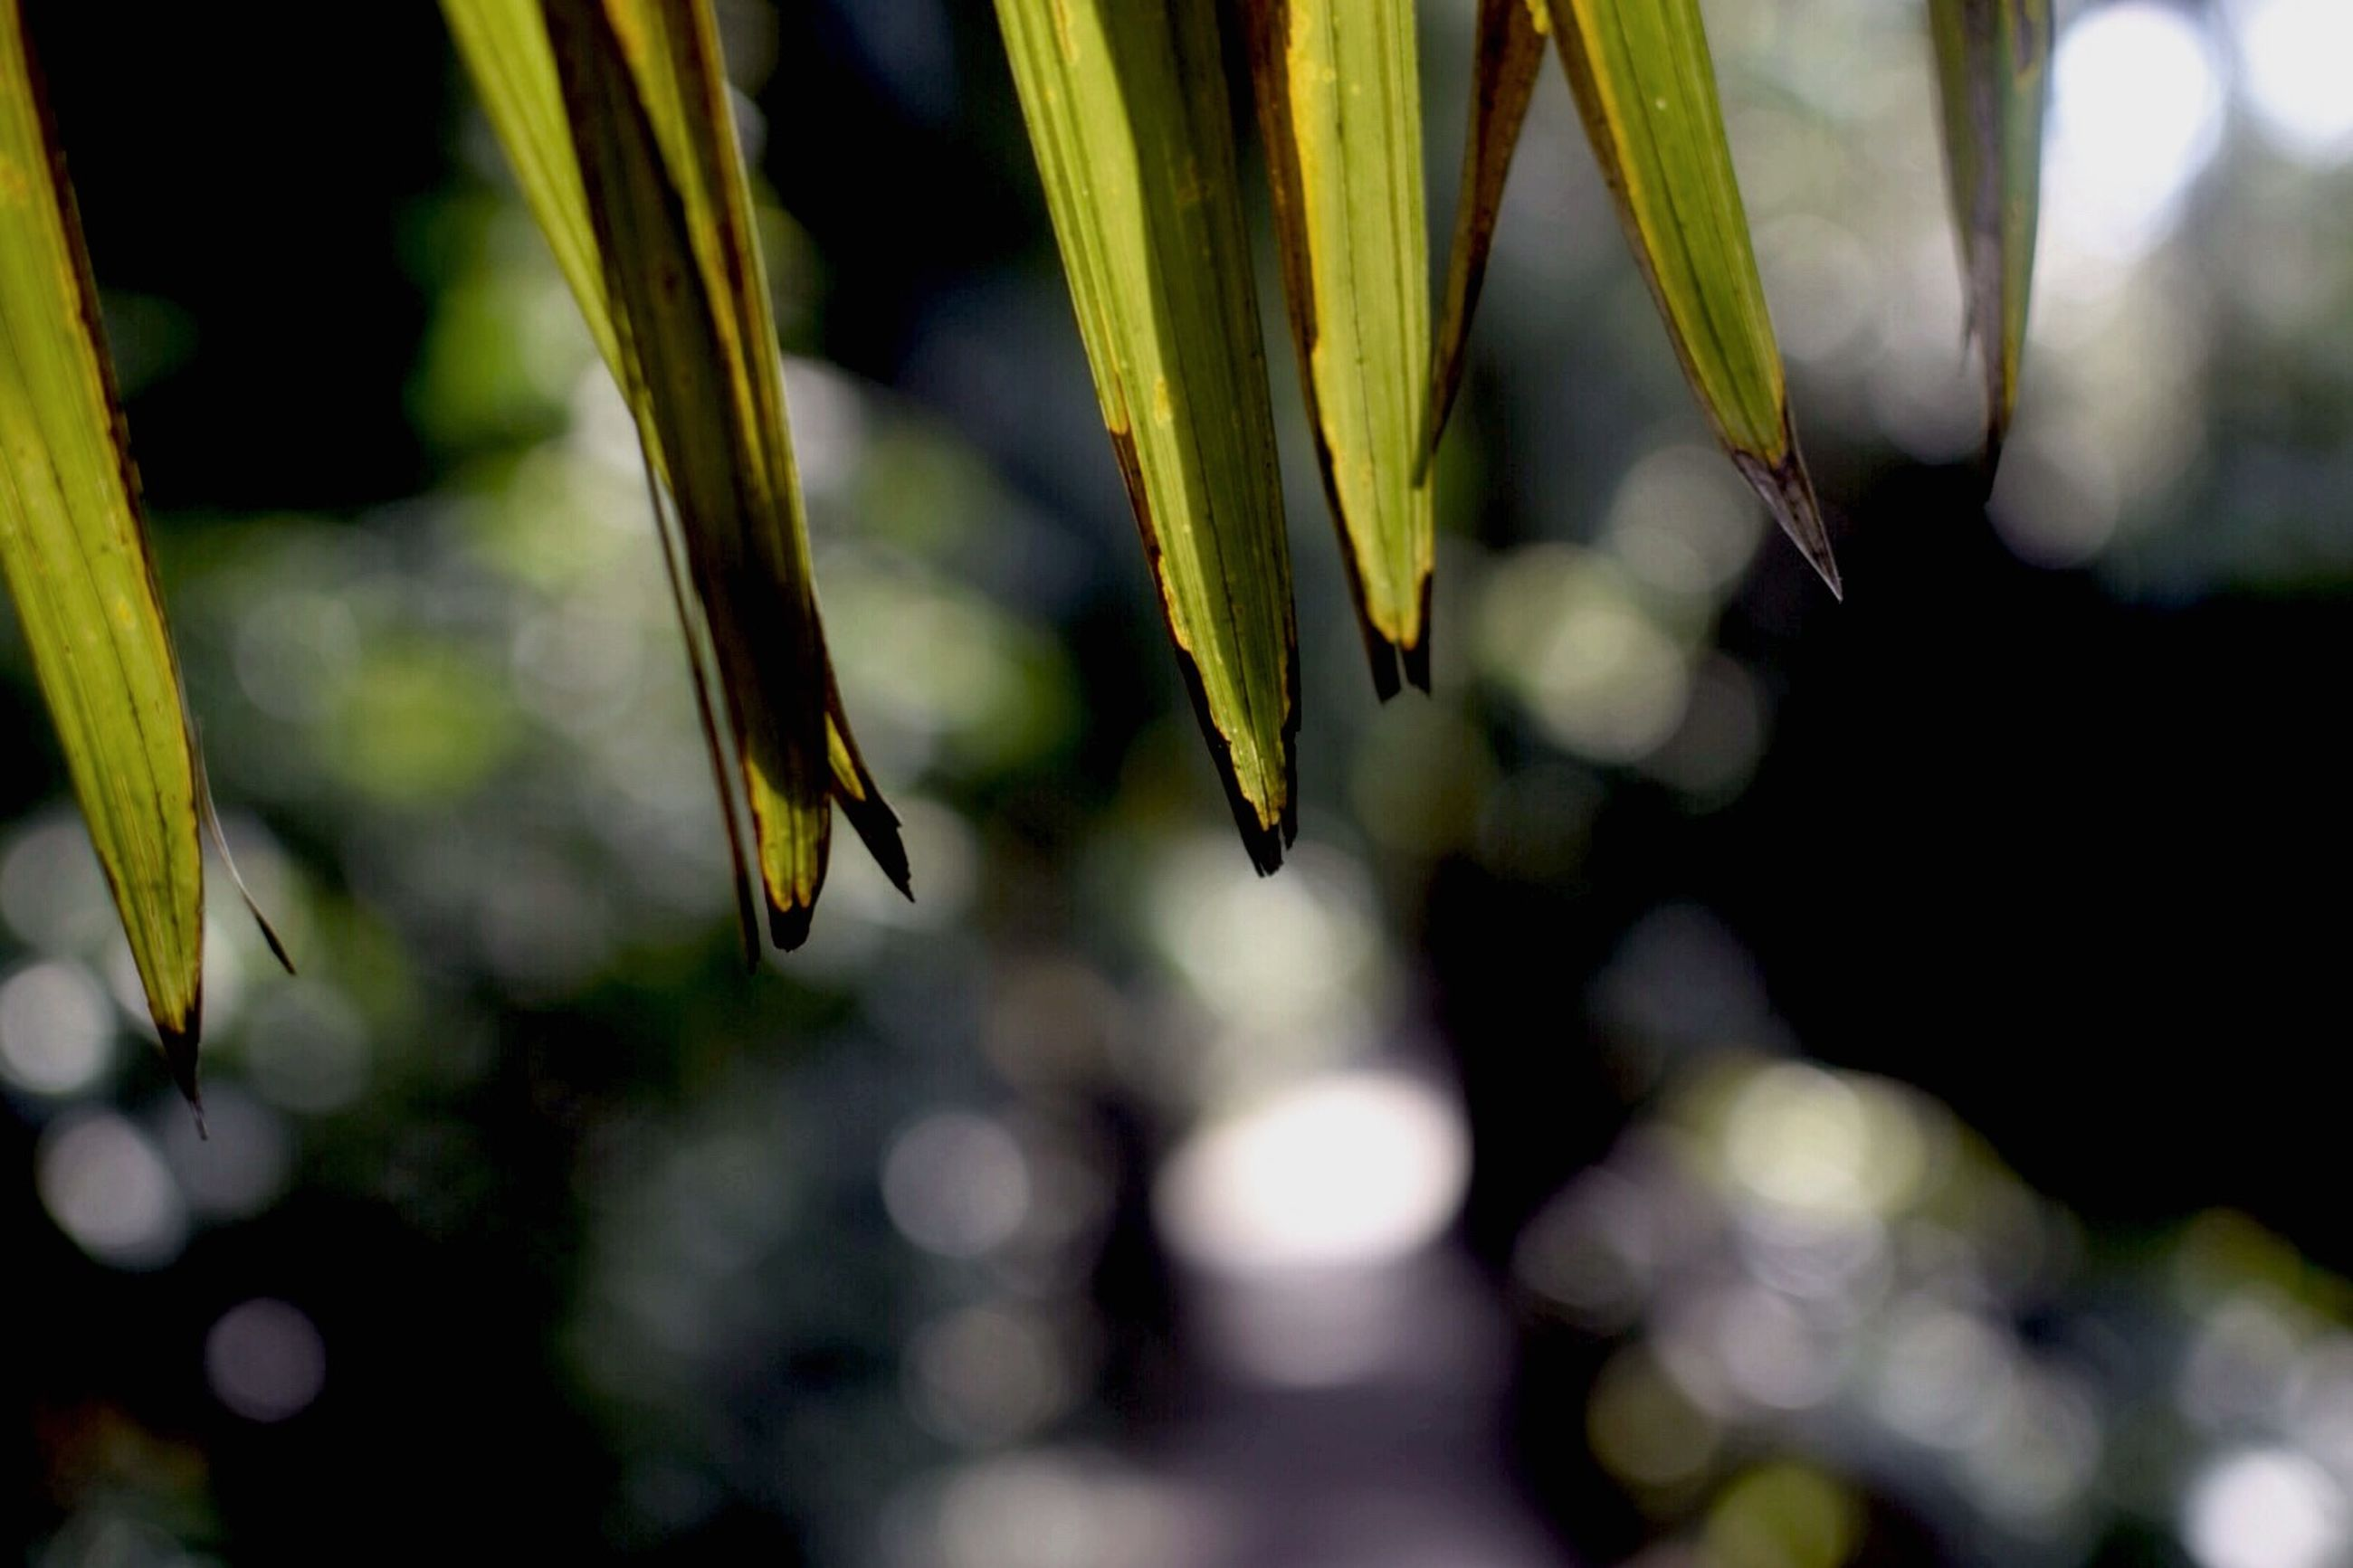 close-up, focus on foreground, growth, plant, leaf, selective focus, stem, nature, freshness, fragility, bud, beauty in nature, green color, beginnings, flower, new life, outdoors, day, twig, no people